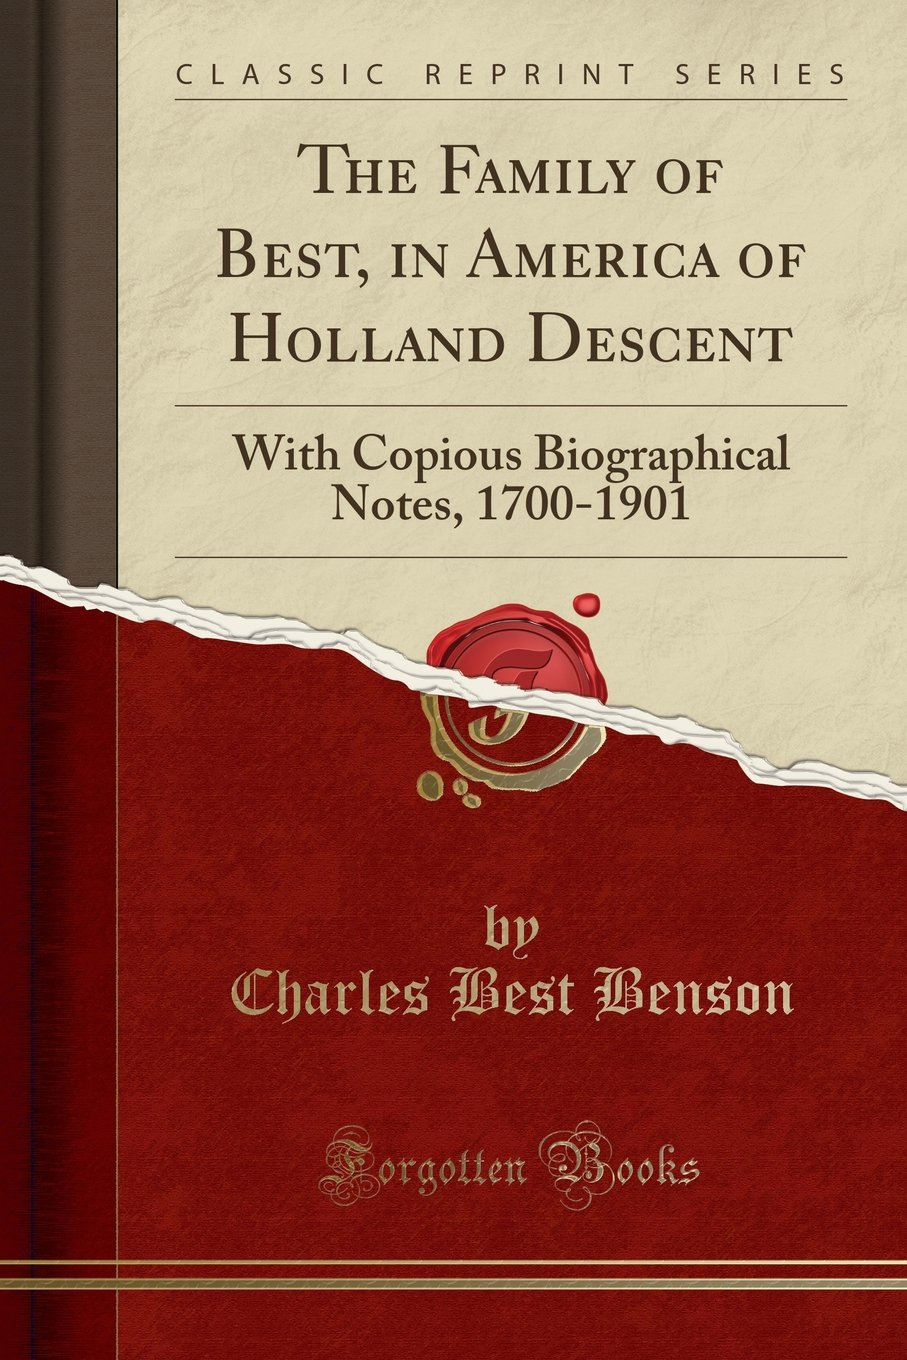 Download The Family of Best, in America of Holland Descent: With Copious Biographical Notes, 1700-1901 (Classic Reprint) pdf epub